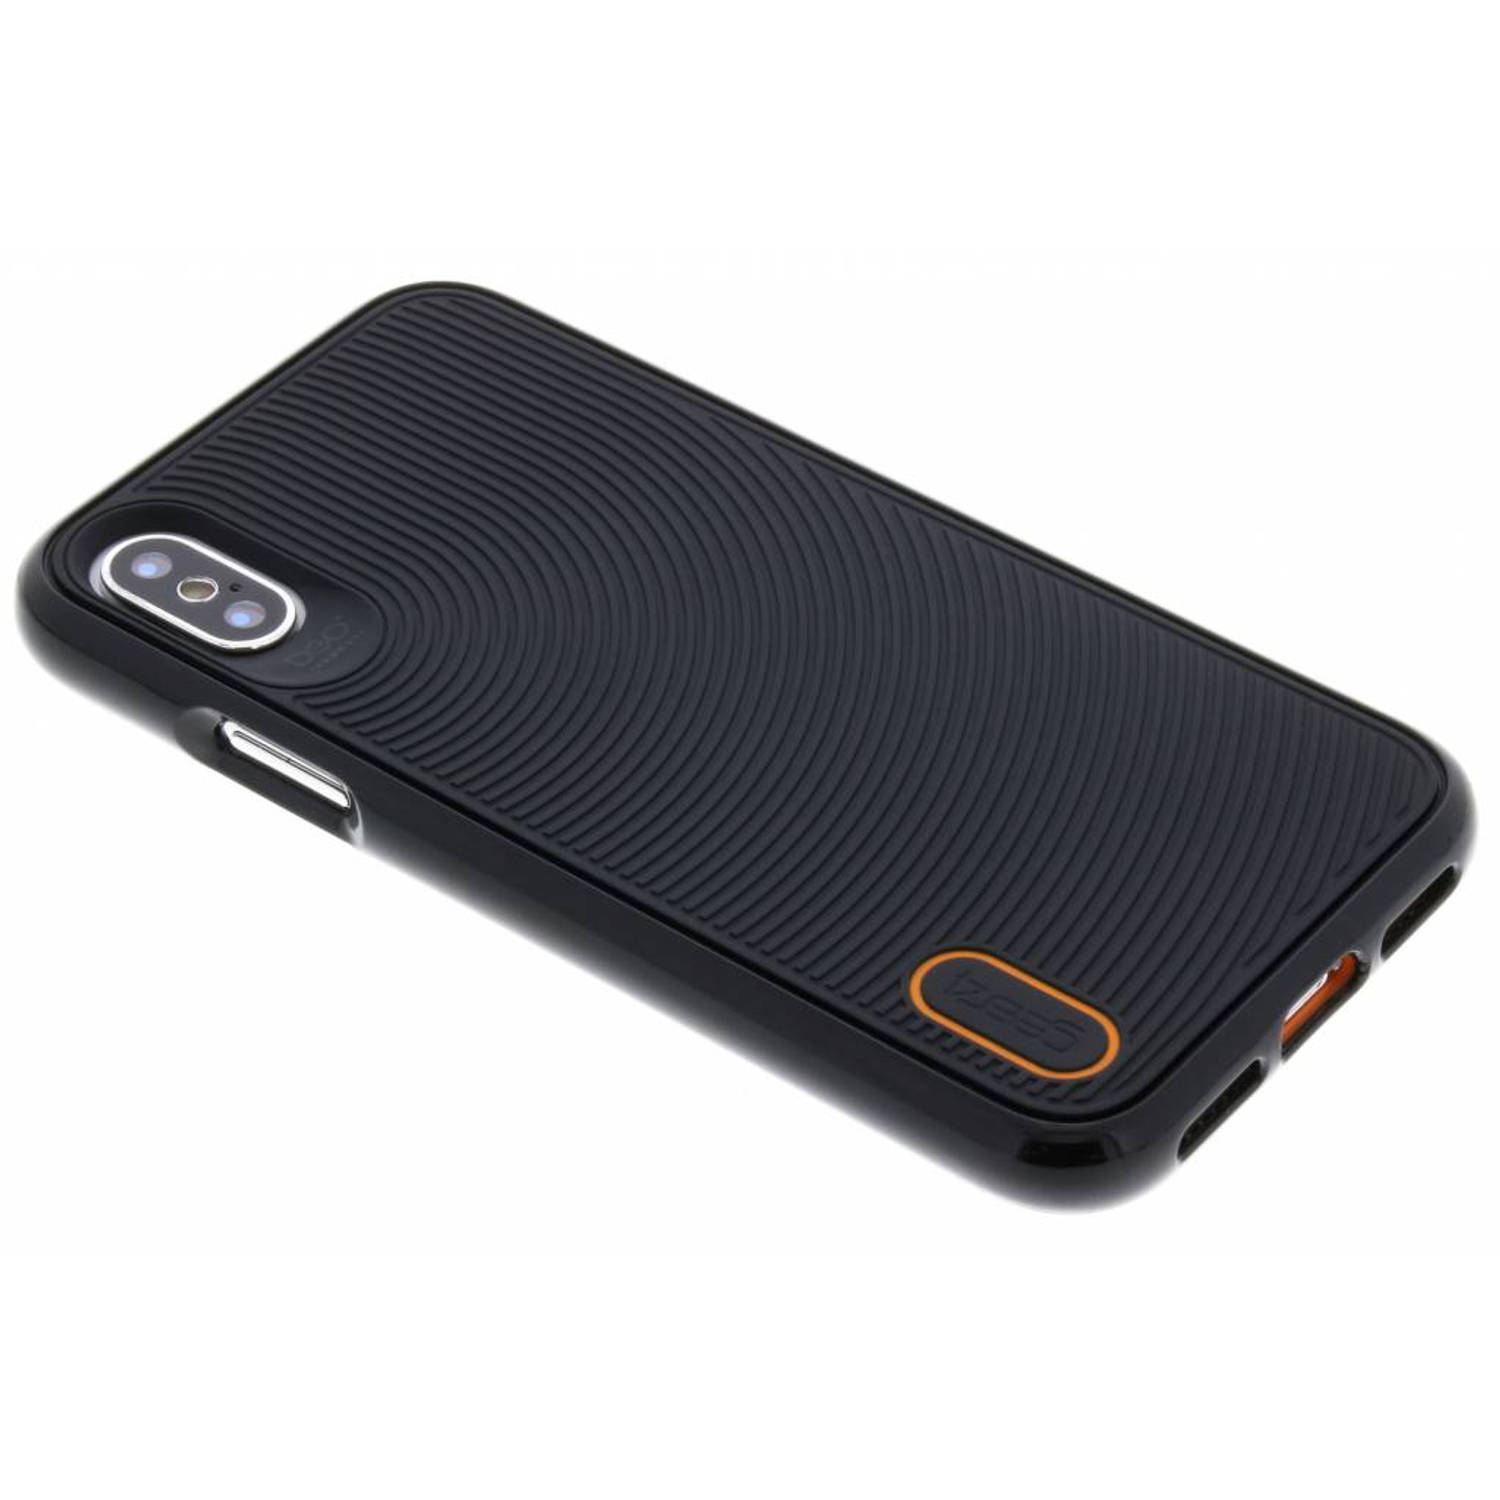 Oranje D3O® Battersea Case voor de iPhone Xs / X